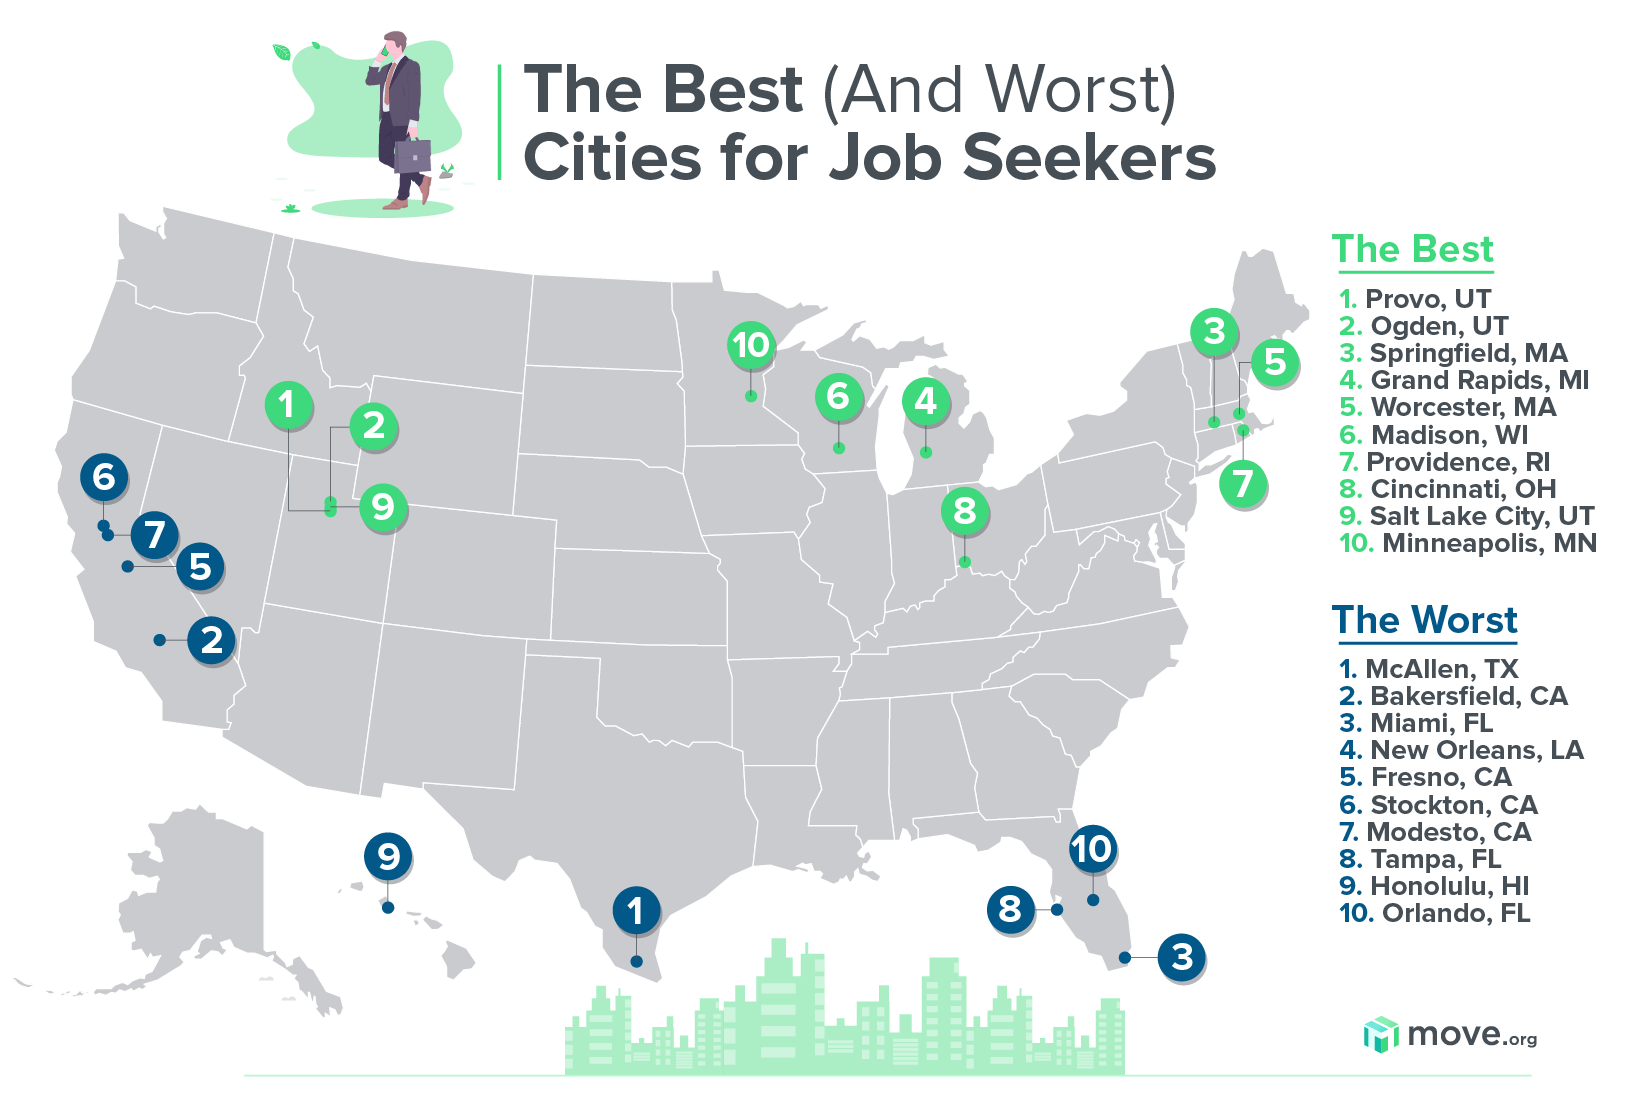 The Best (and Worst) Cities for Job Seekers map of the United States